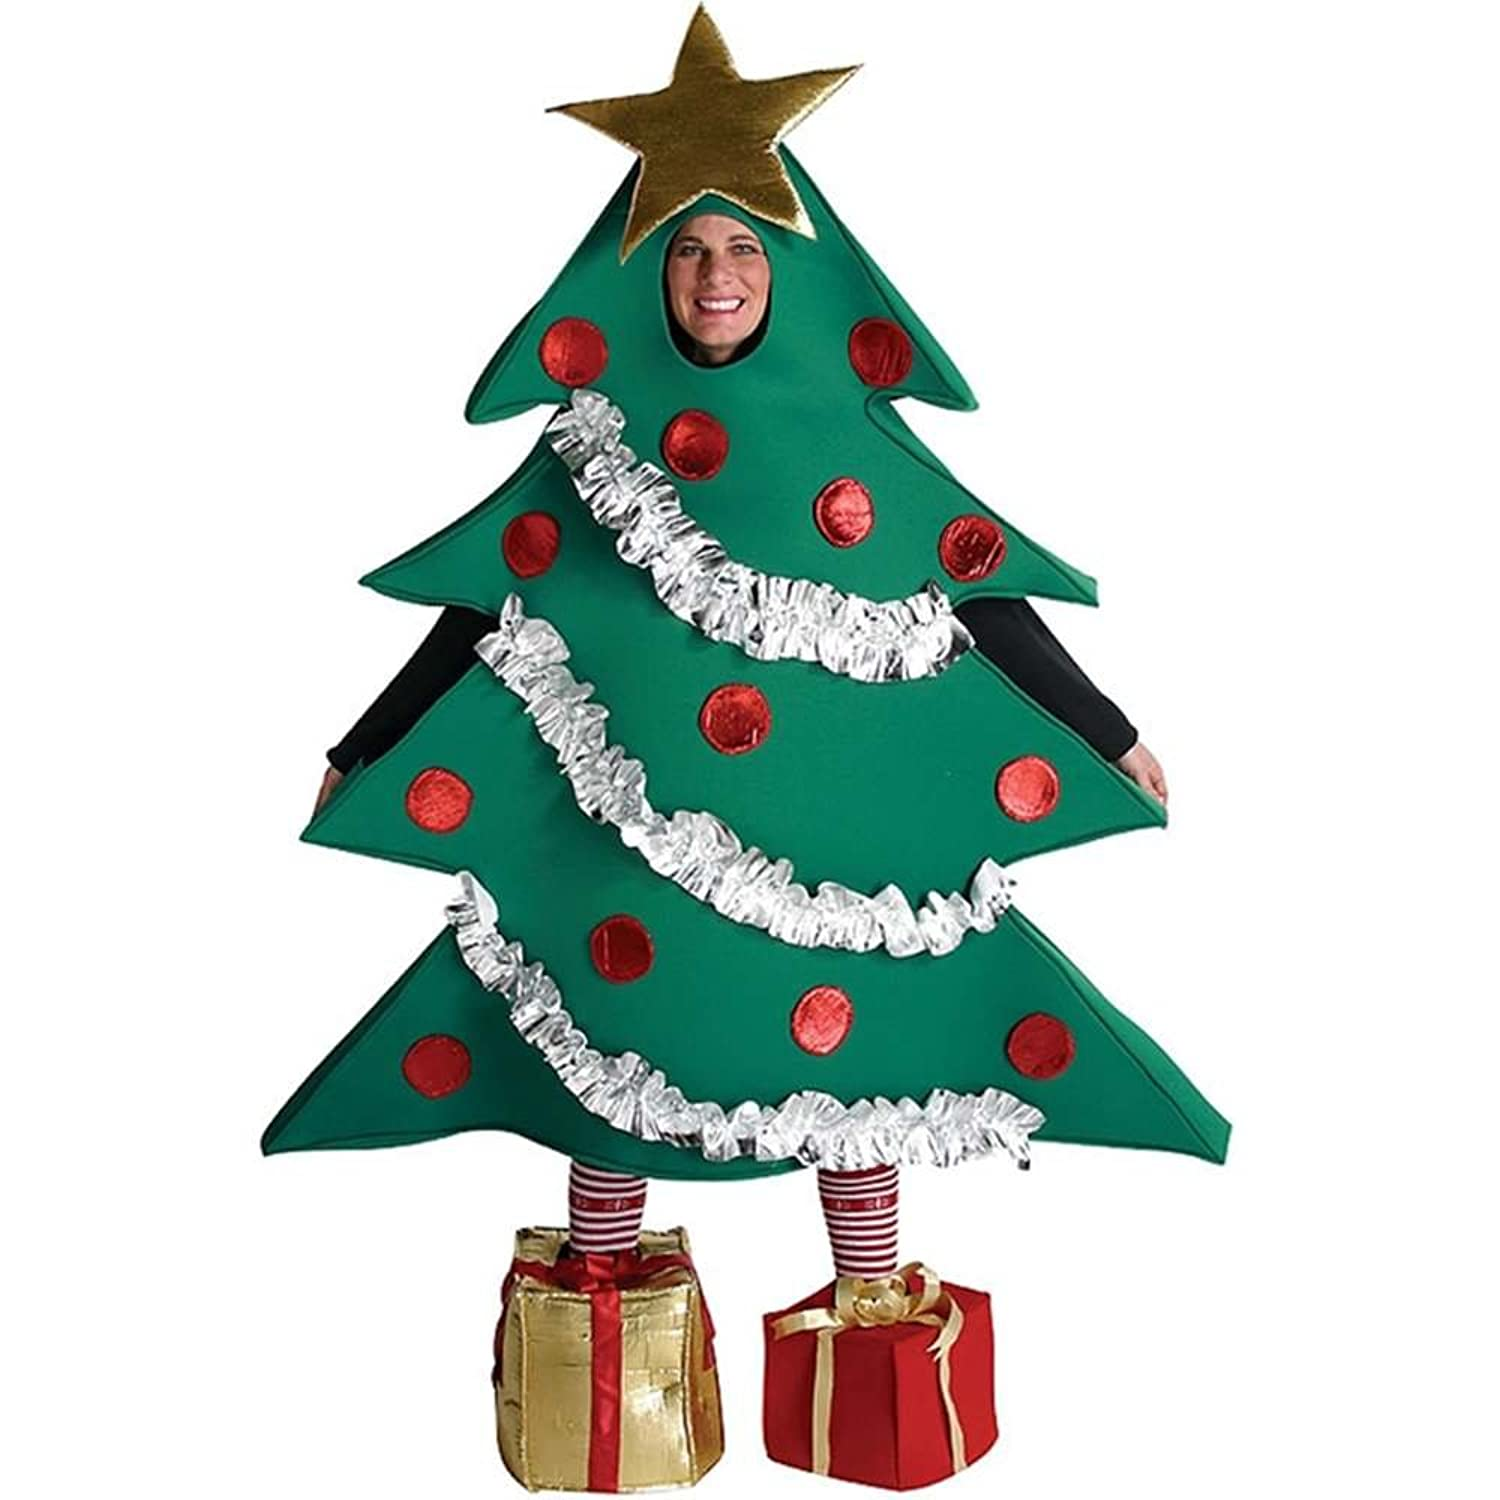 Amazon.com: Christmas Tree Costume - One Size - Chest Size 48-52 ...